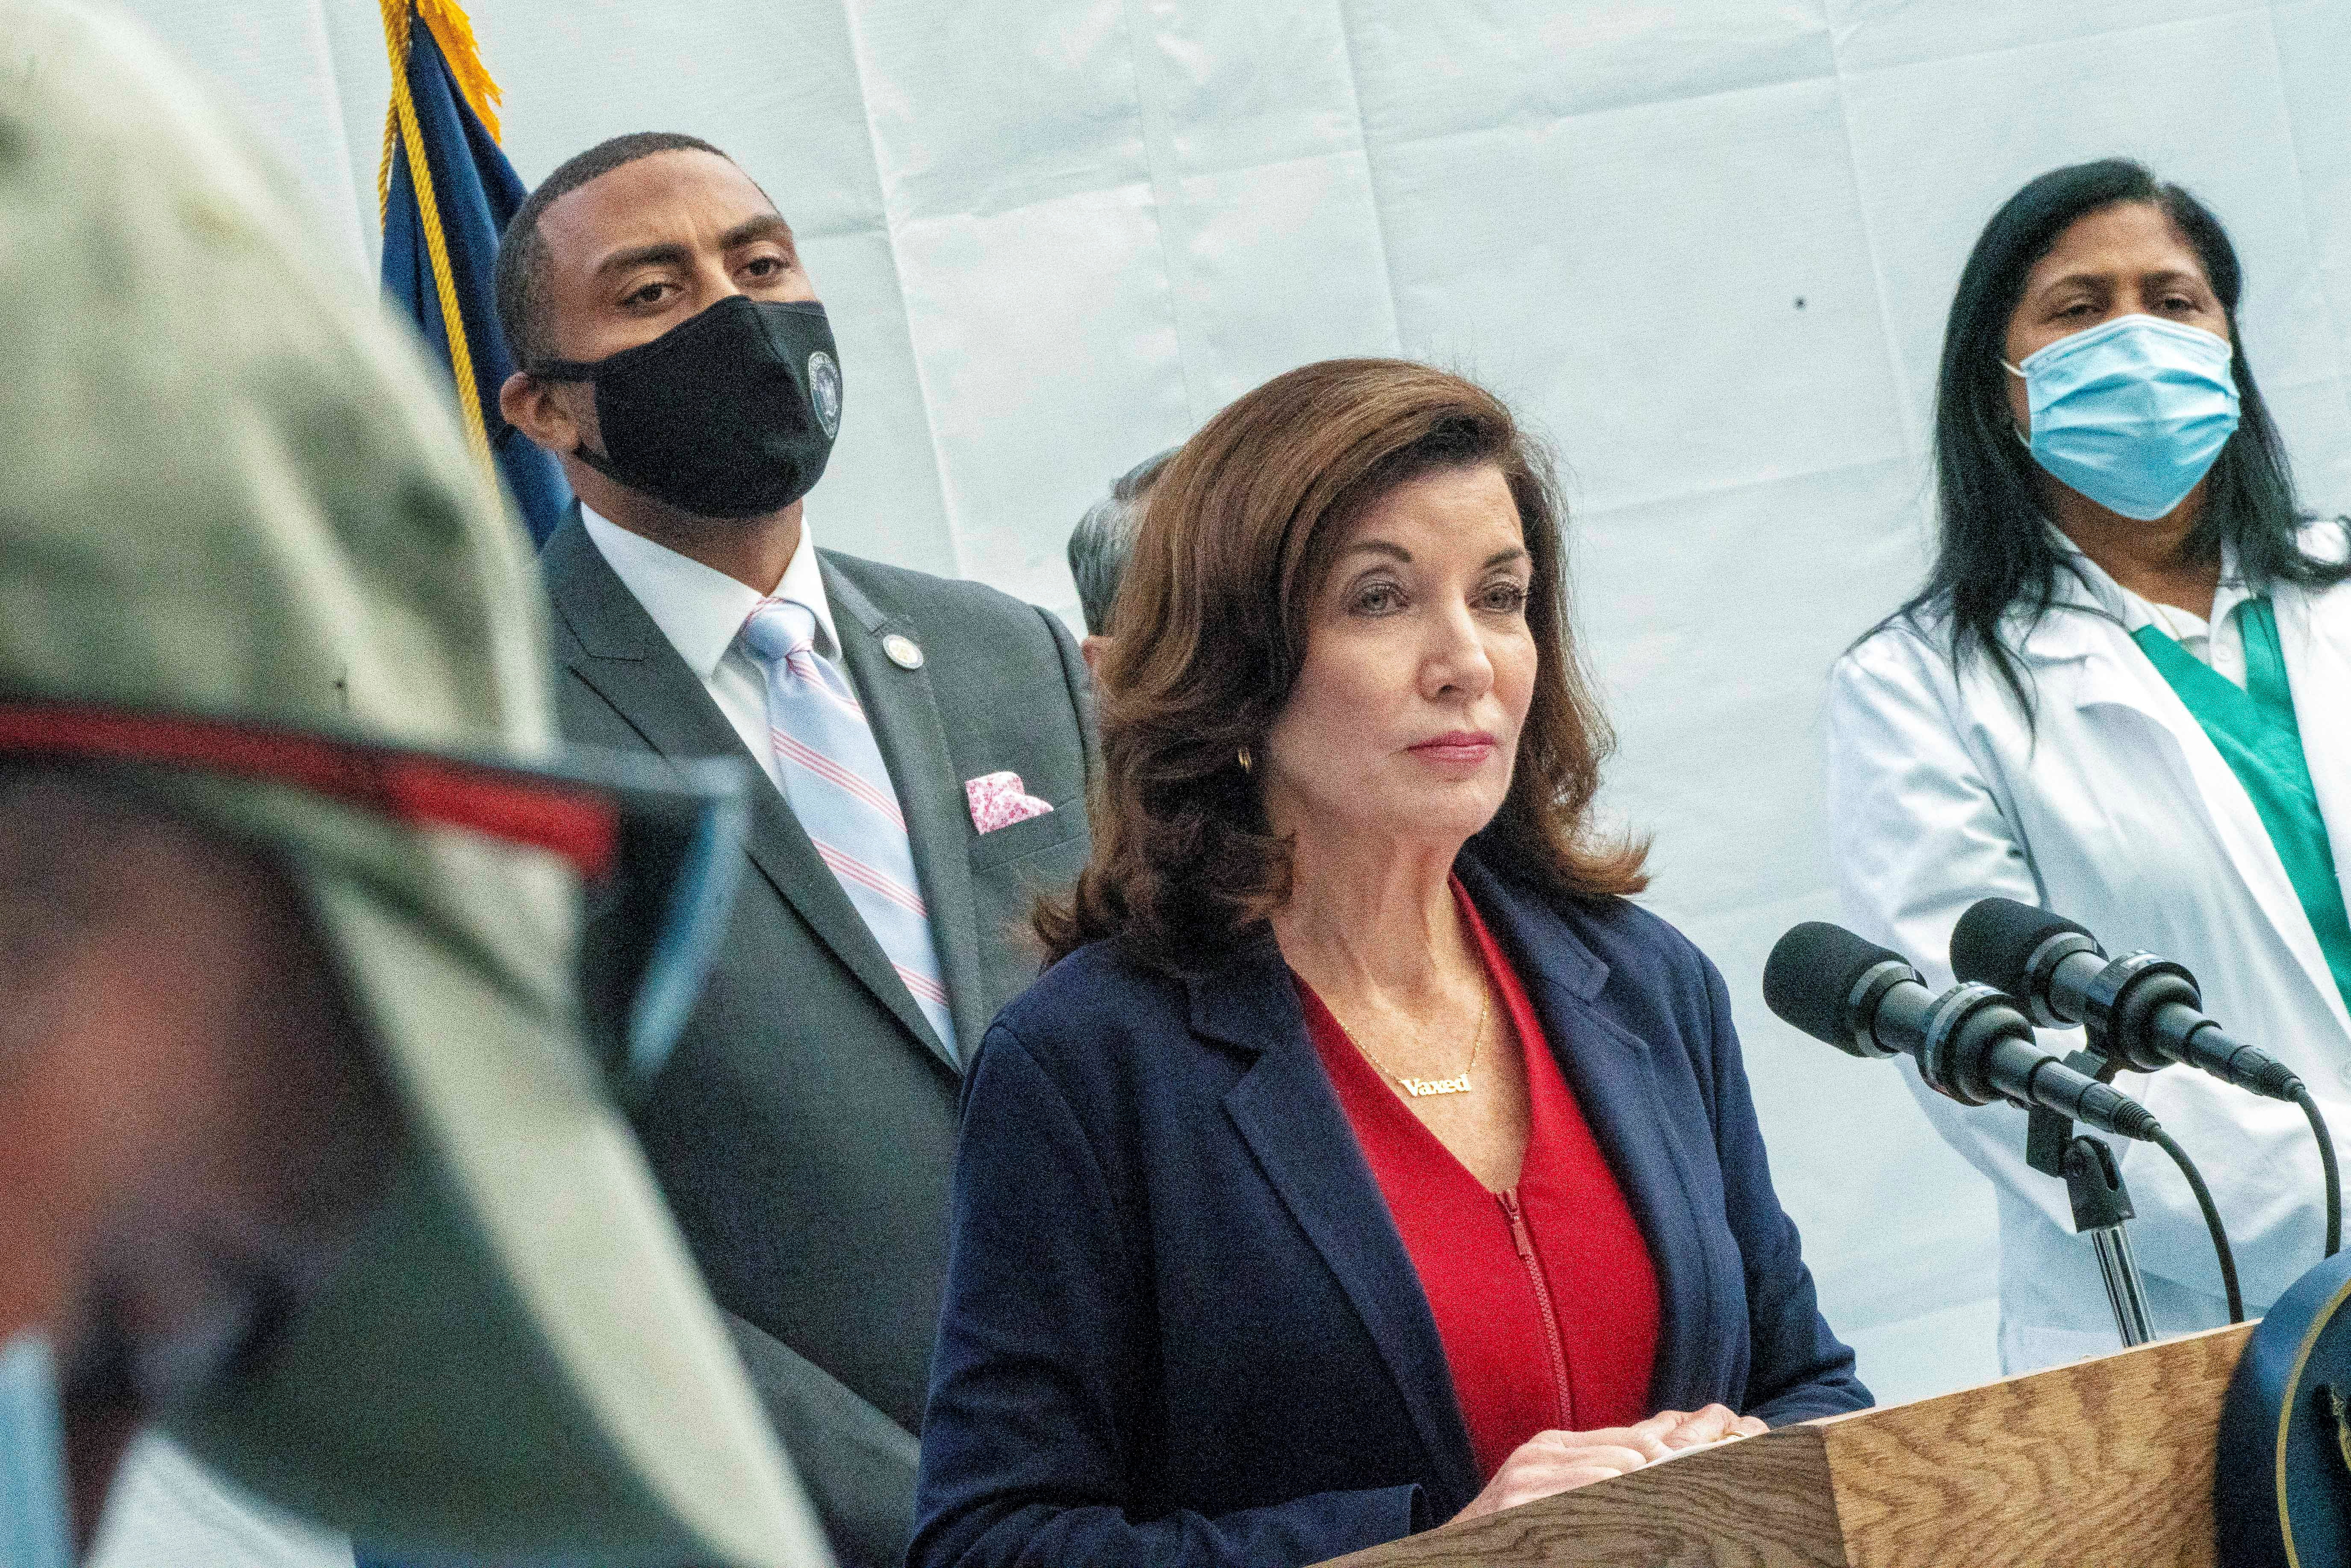 New York State Governor Kathy Hochul speaks during a news conference about the coronavirus disease (COVID-19) vaccination mandate for healthcare workers, in New York City, U.S., September 27, 2021. REUTERS/David 'Dee' Delgado